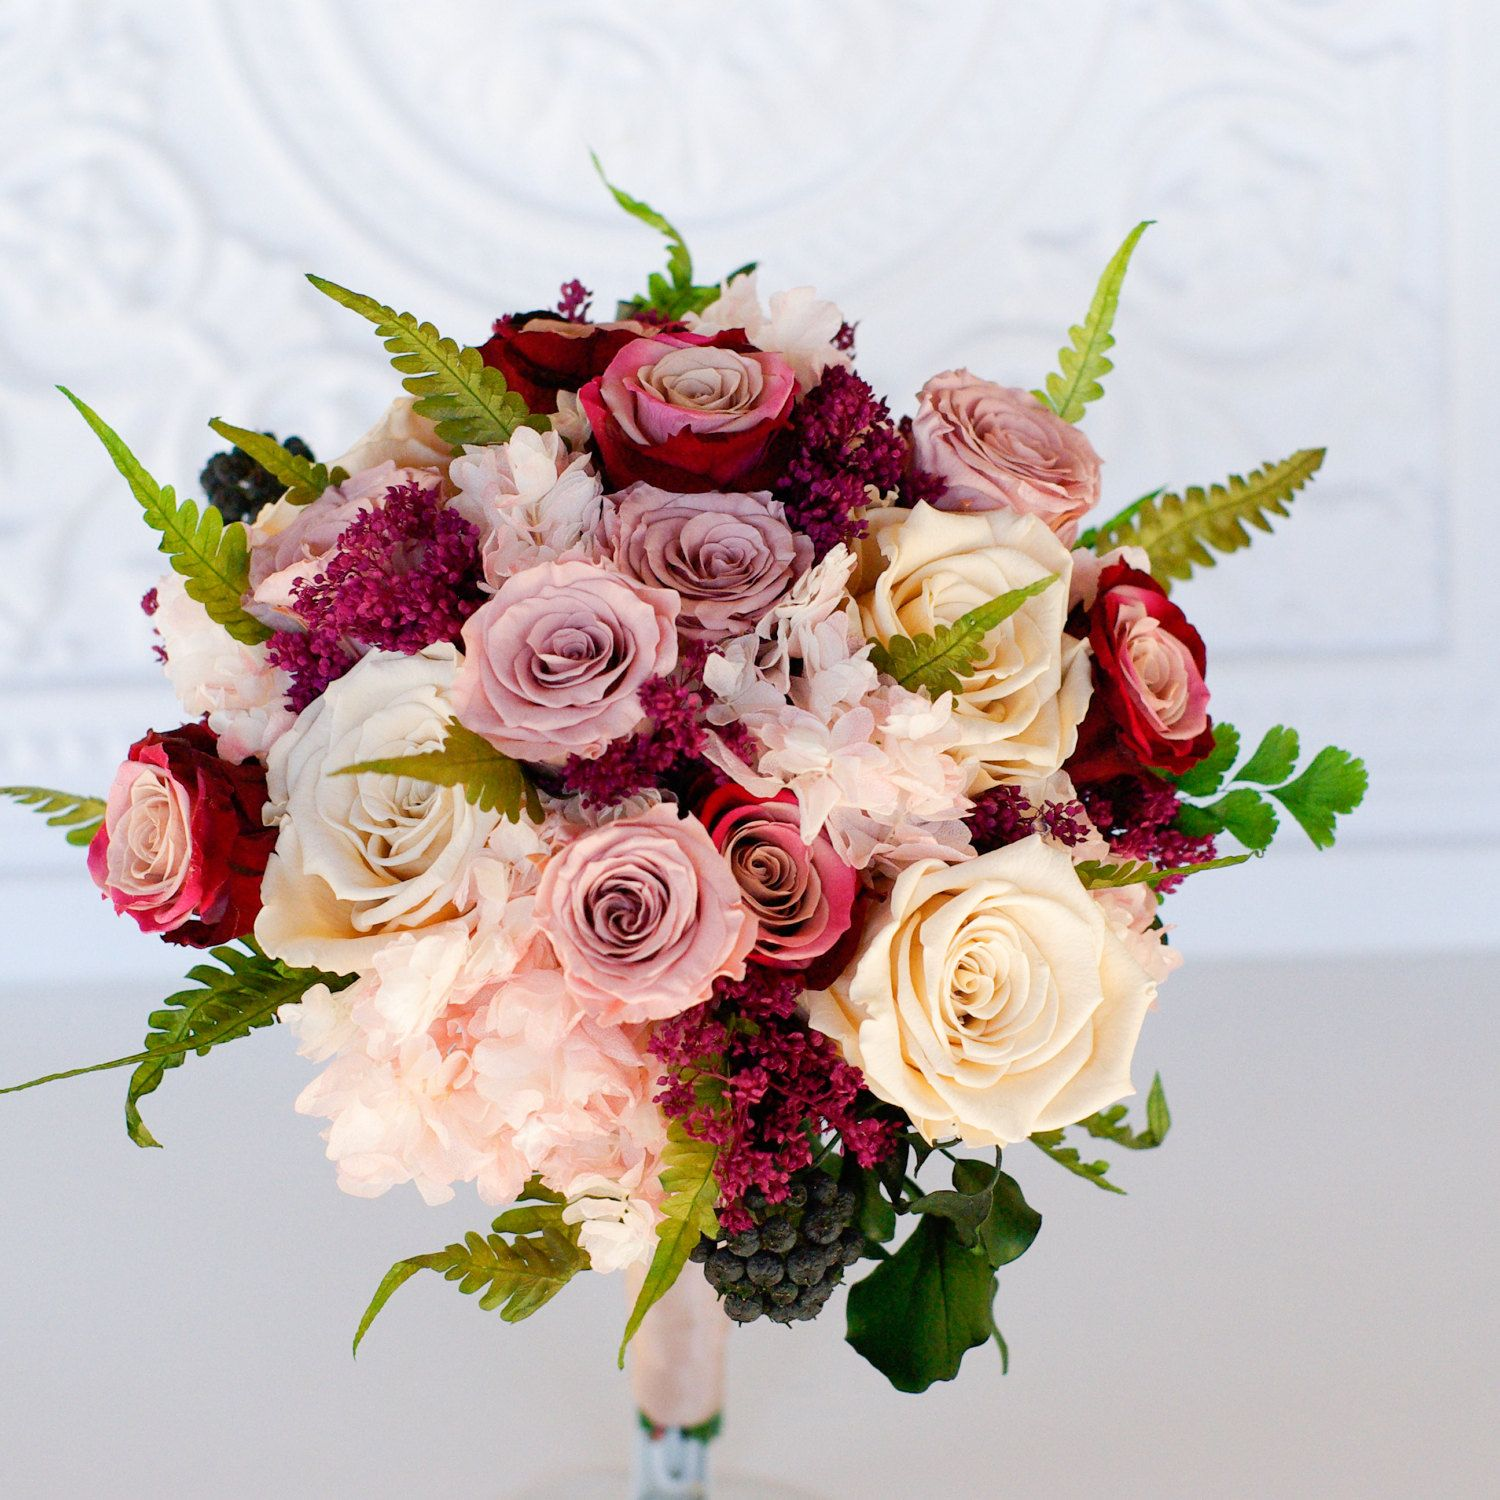 Mauve Dusty Rose Blush Marsala Mulberry Moss Green Ivory Bridal Bouquet Preserved Real Dried Dusty Rose Wedding Wedding Flowers Colorful Bridal Bouquet